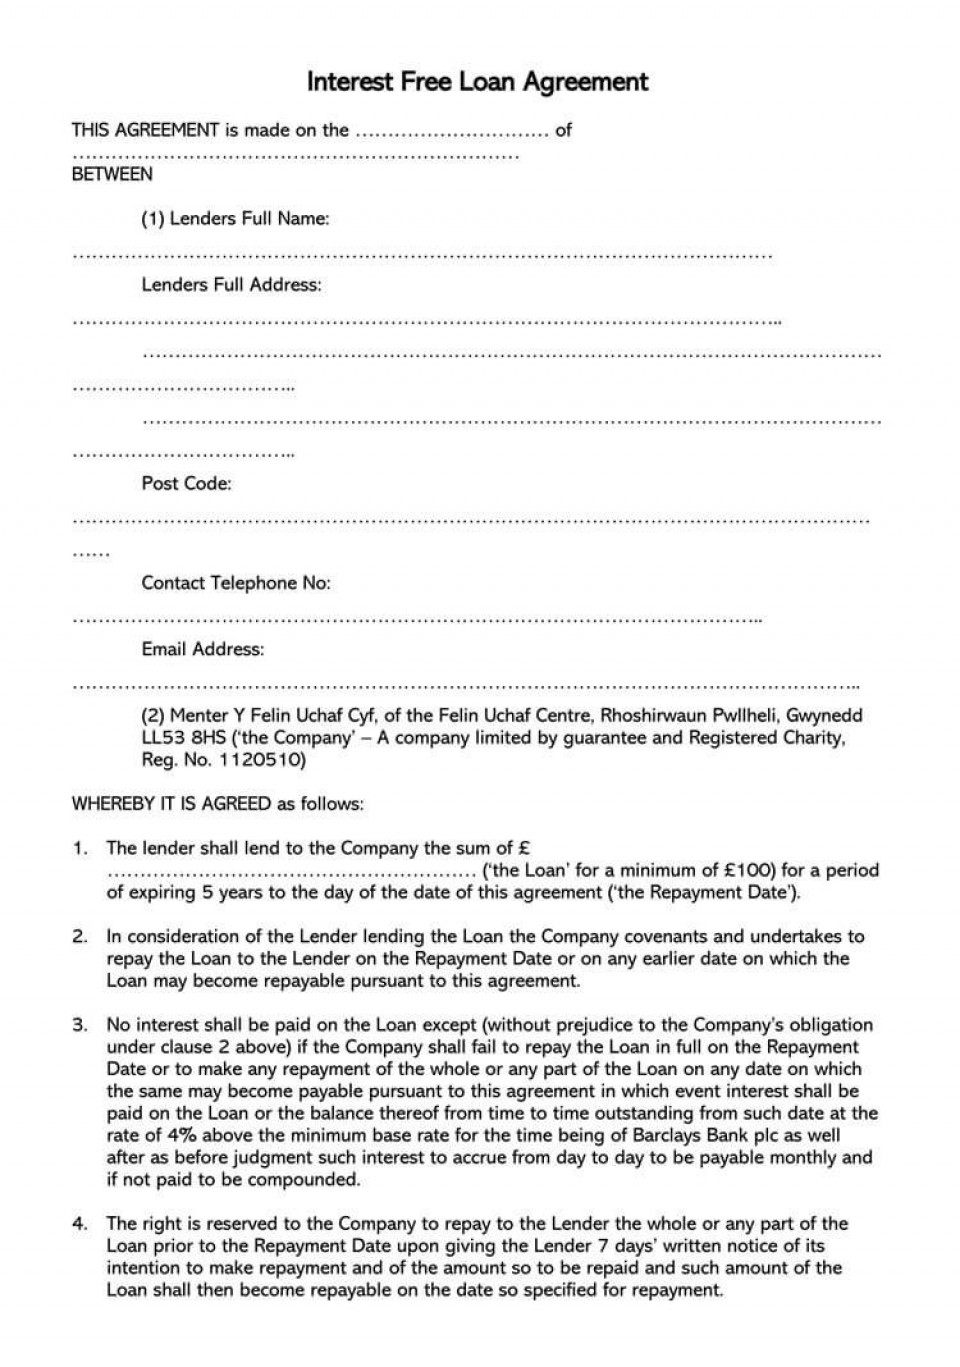 003 Rare Loan Agreement Template Free Image  Download Scotland Ontario Word960